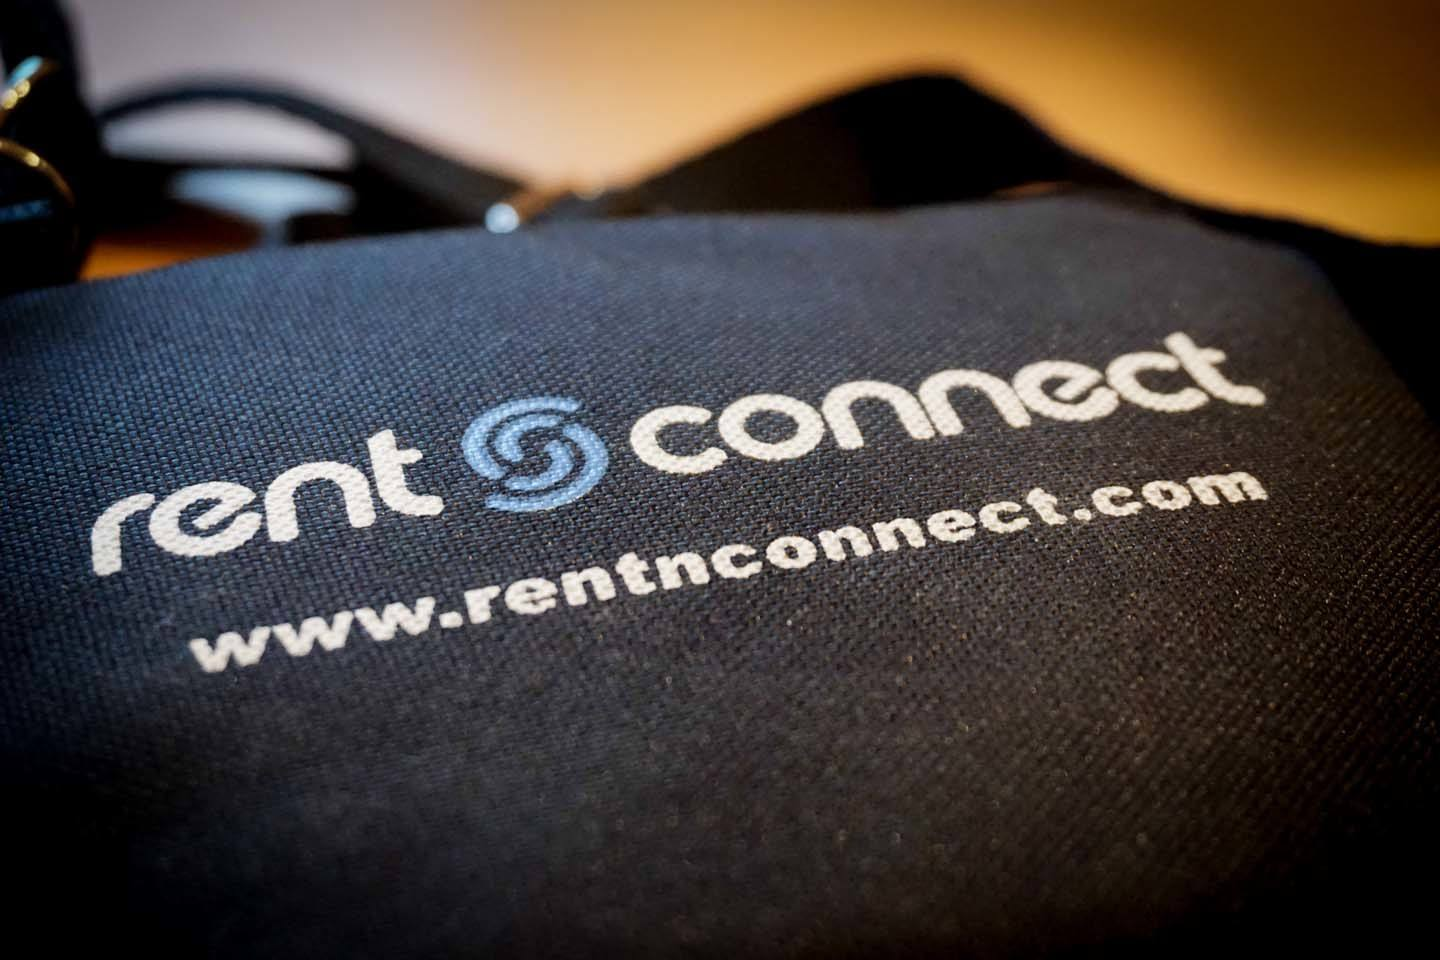 rent and connect wifi device